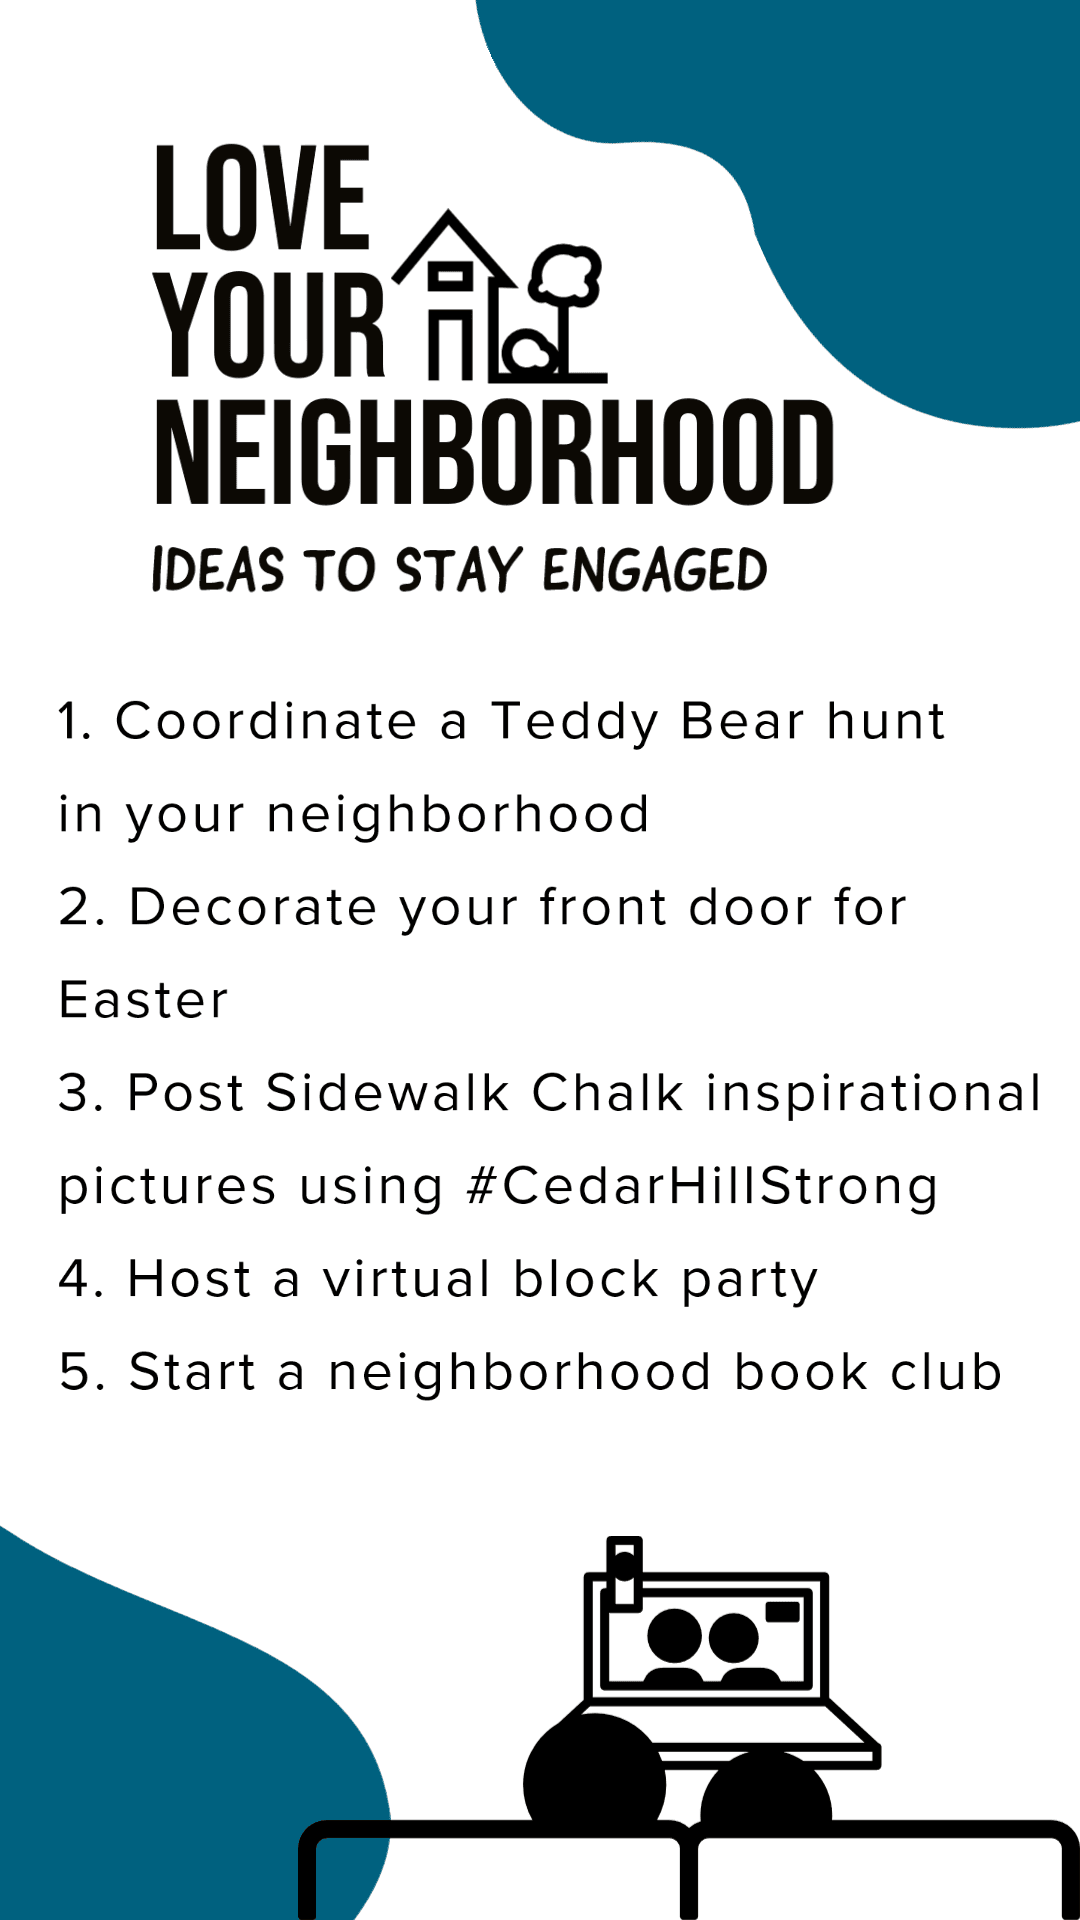 Ideas to stay engaged